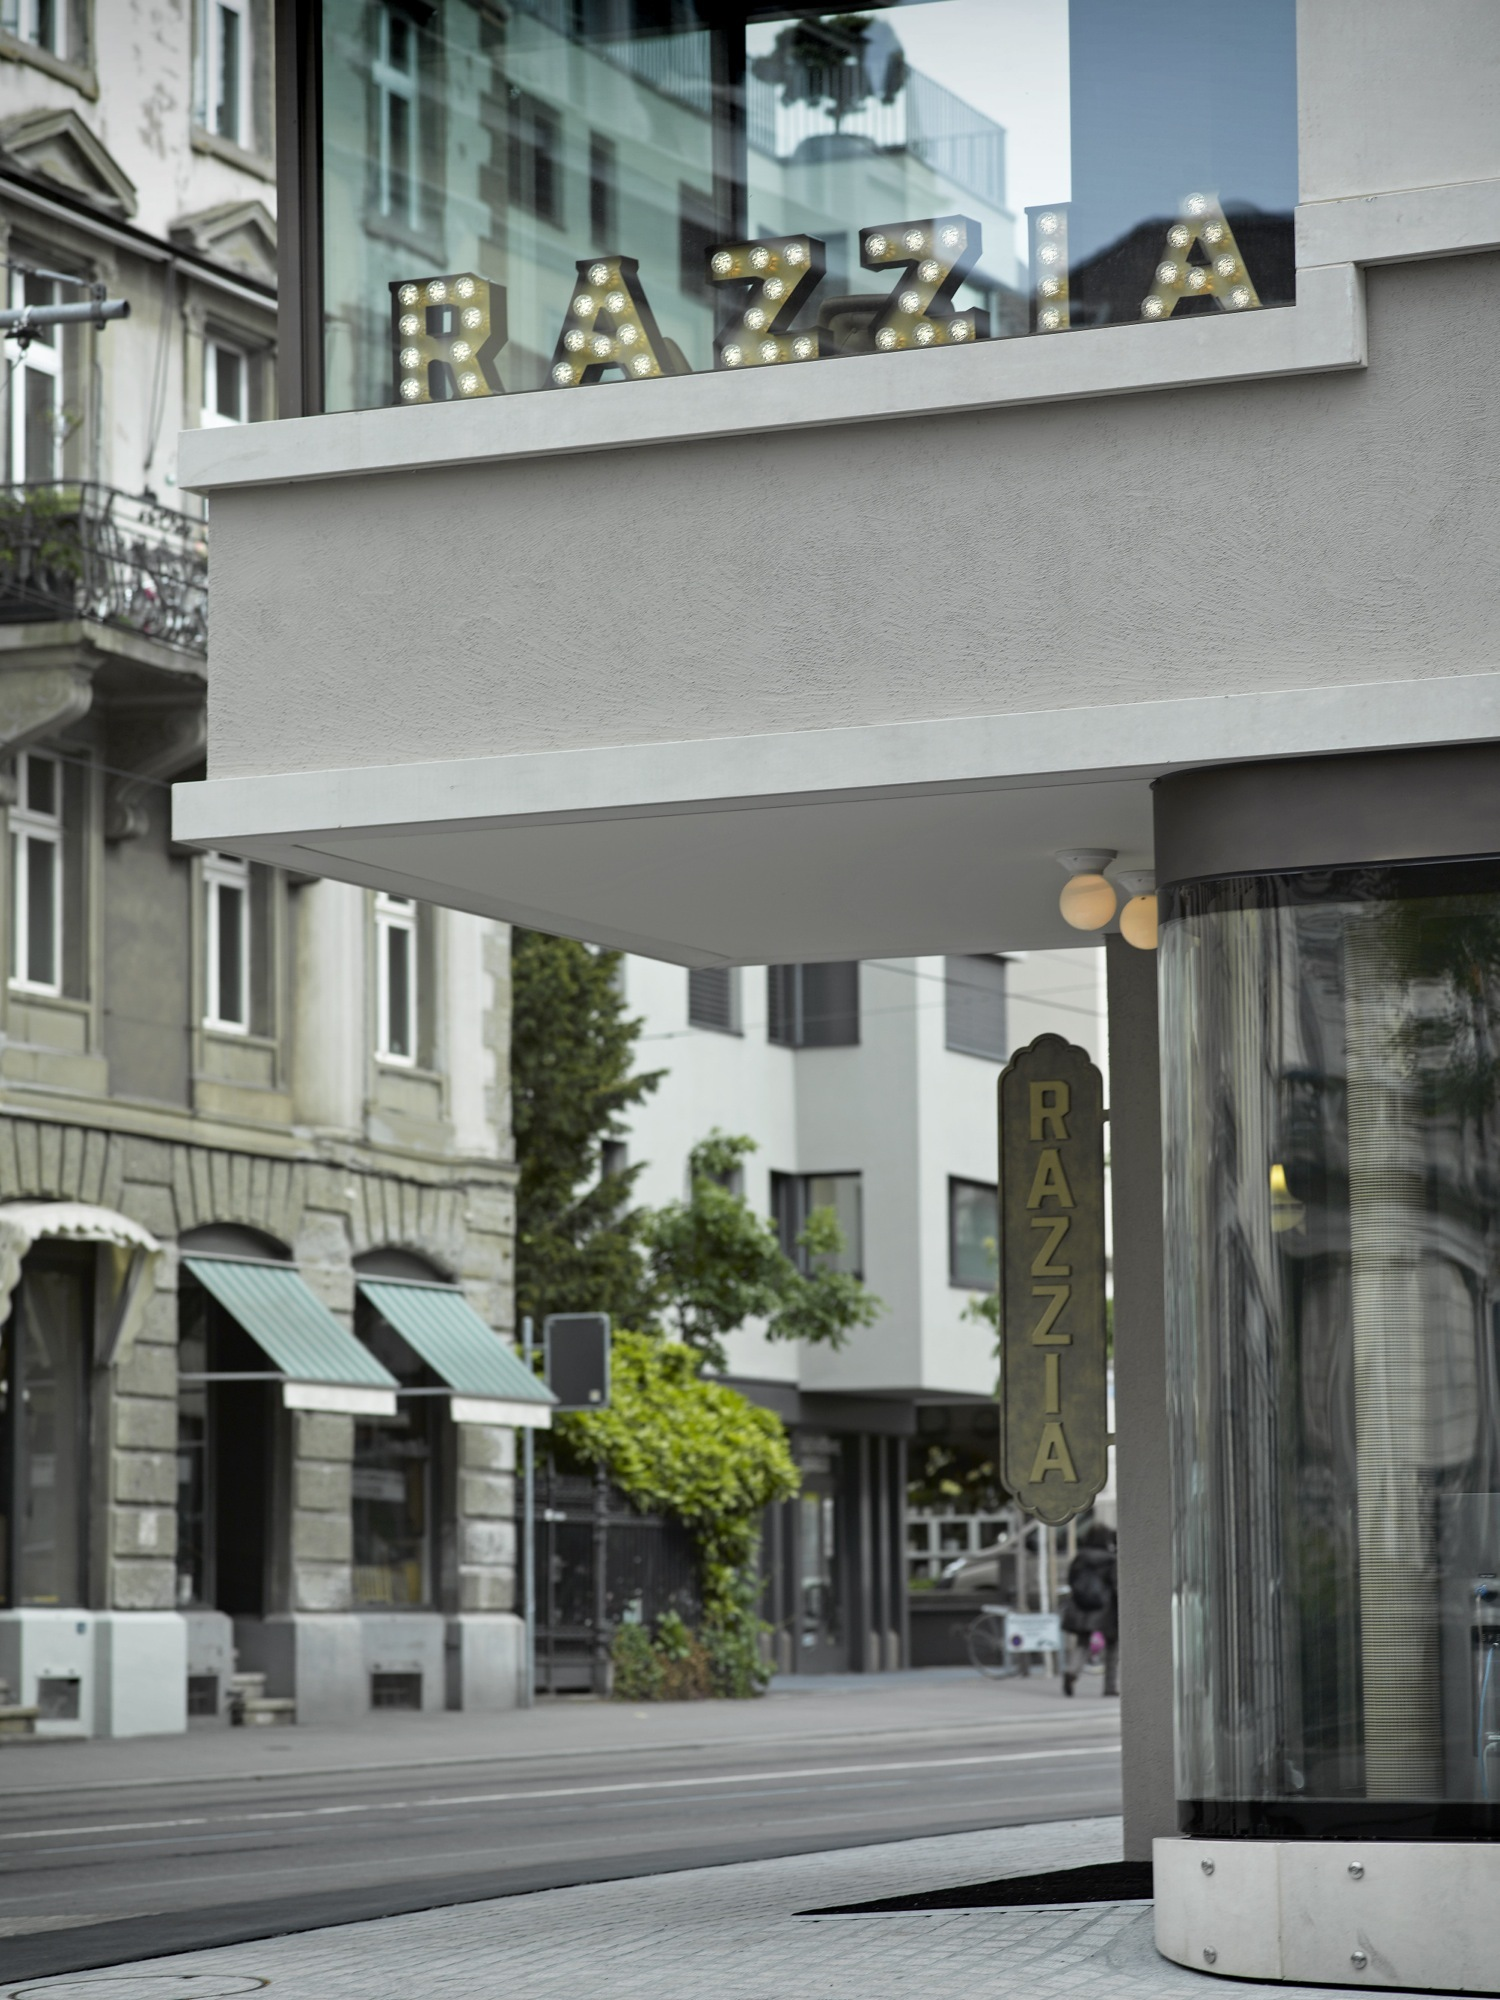 Razzia is a restaurant and bar in Zurich